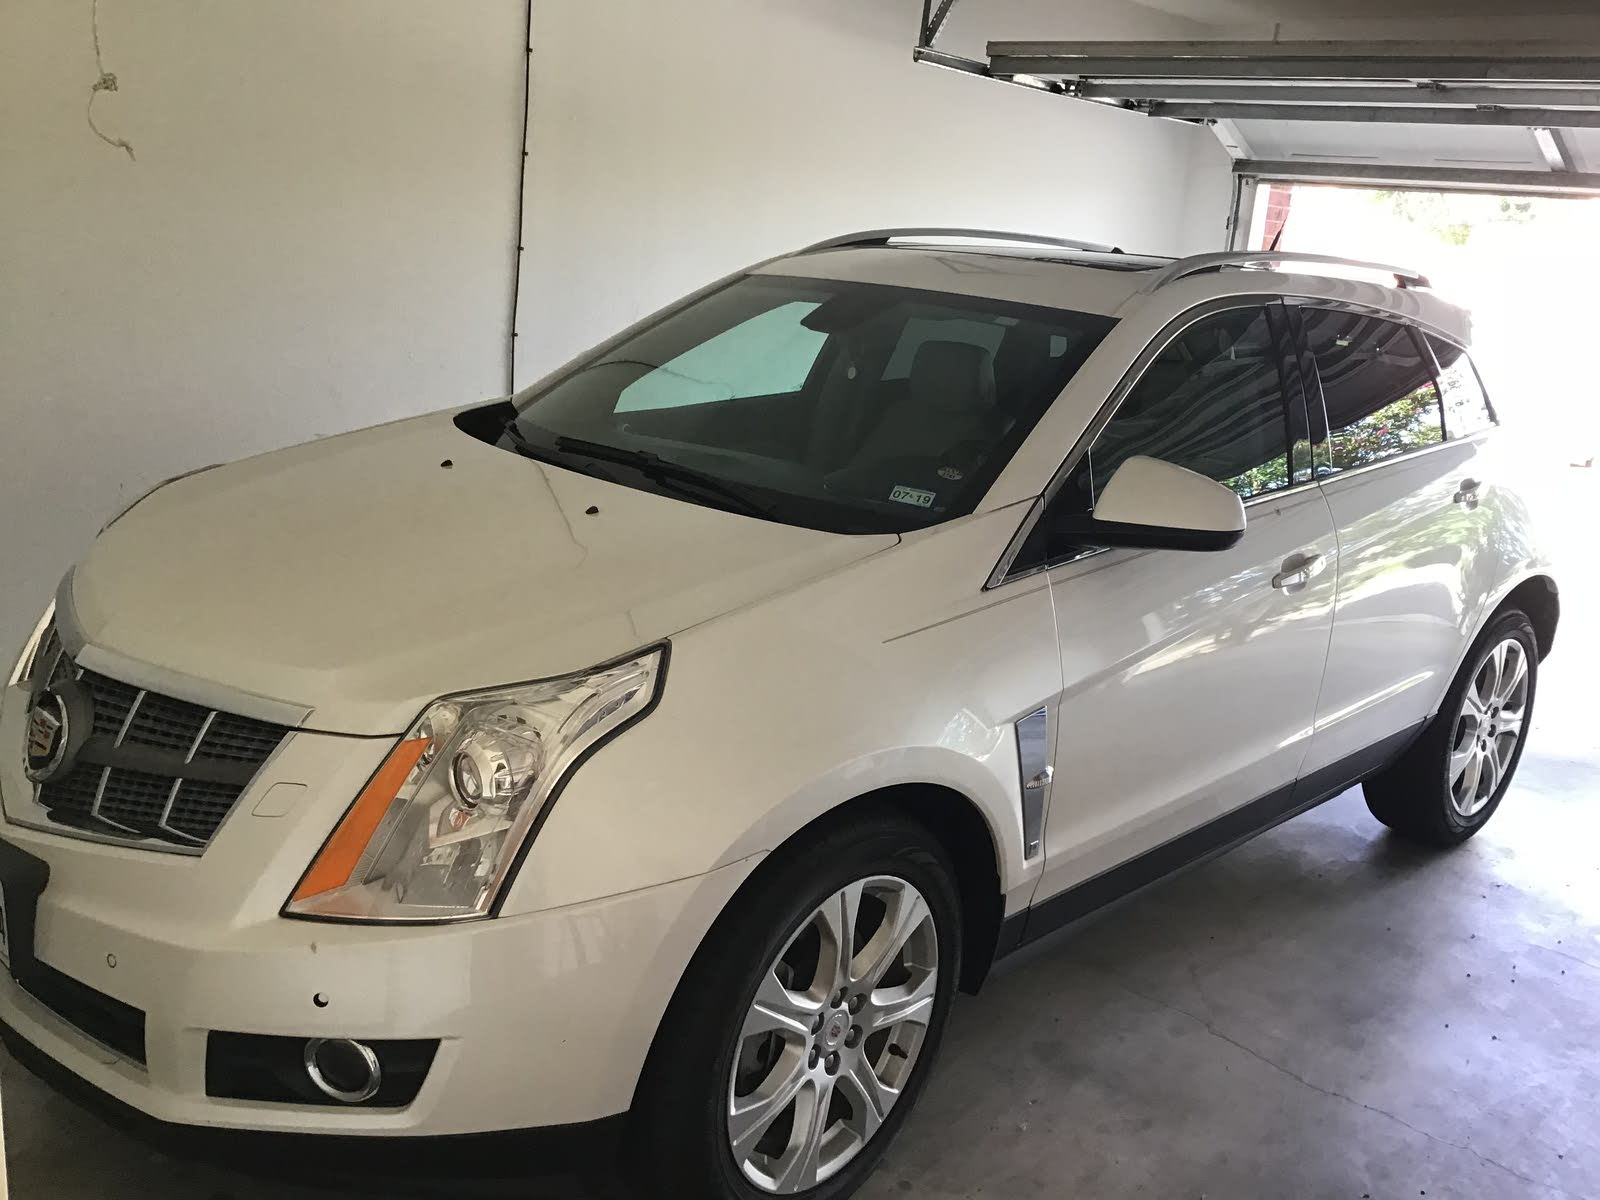 Cadillac Srx Questions Why Will The Remote Start On My Key Fob Not